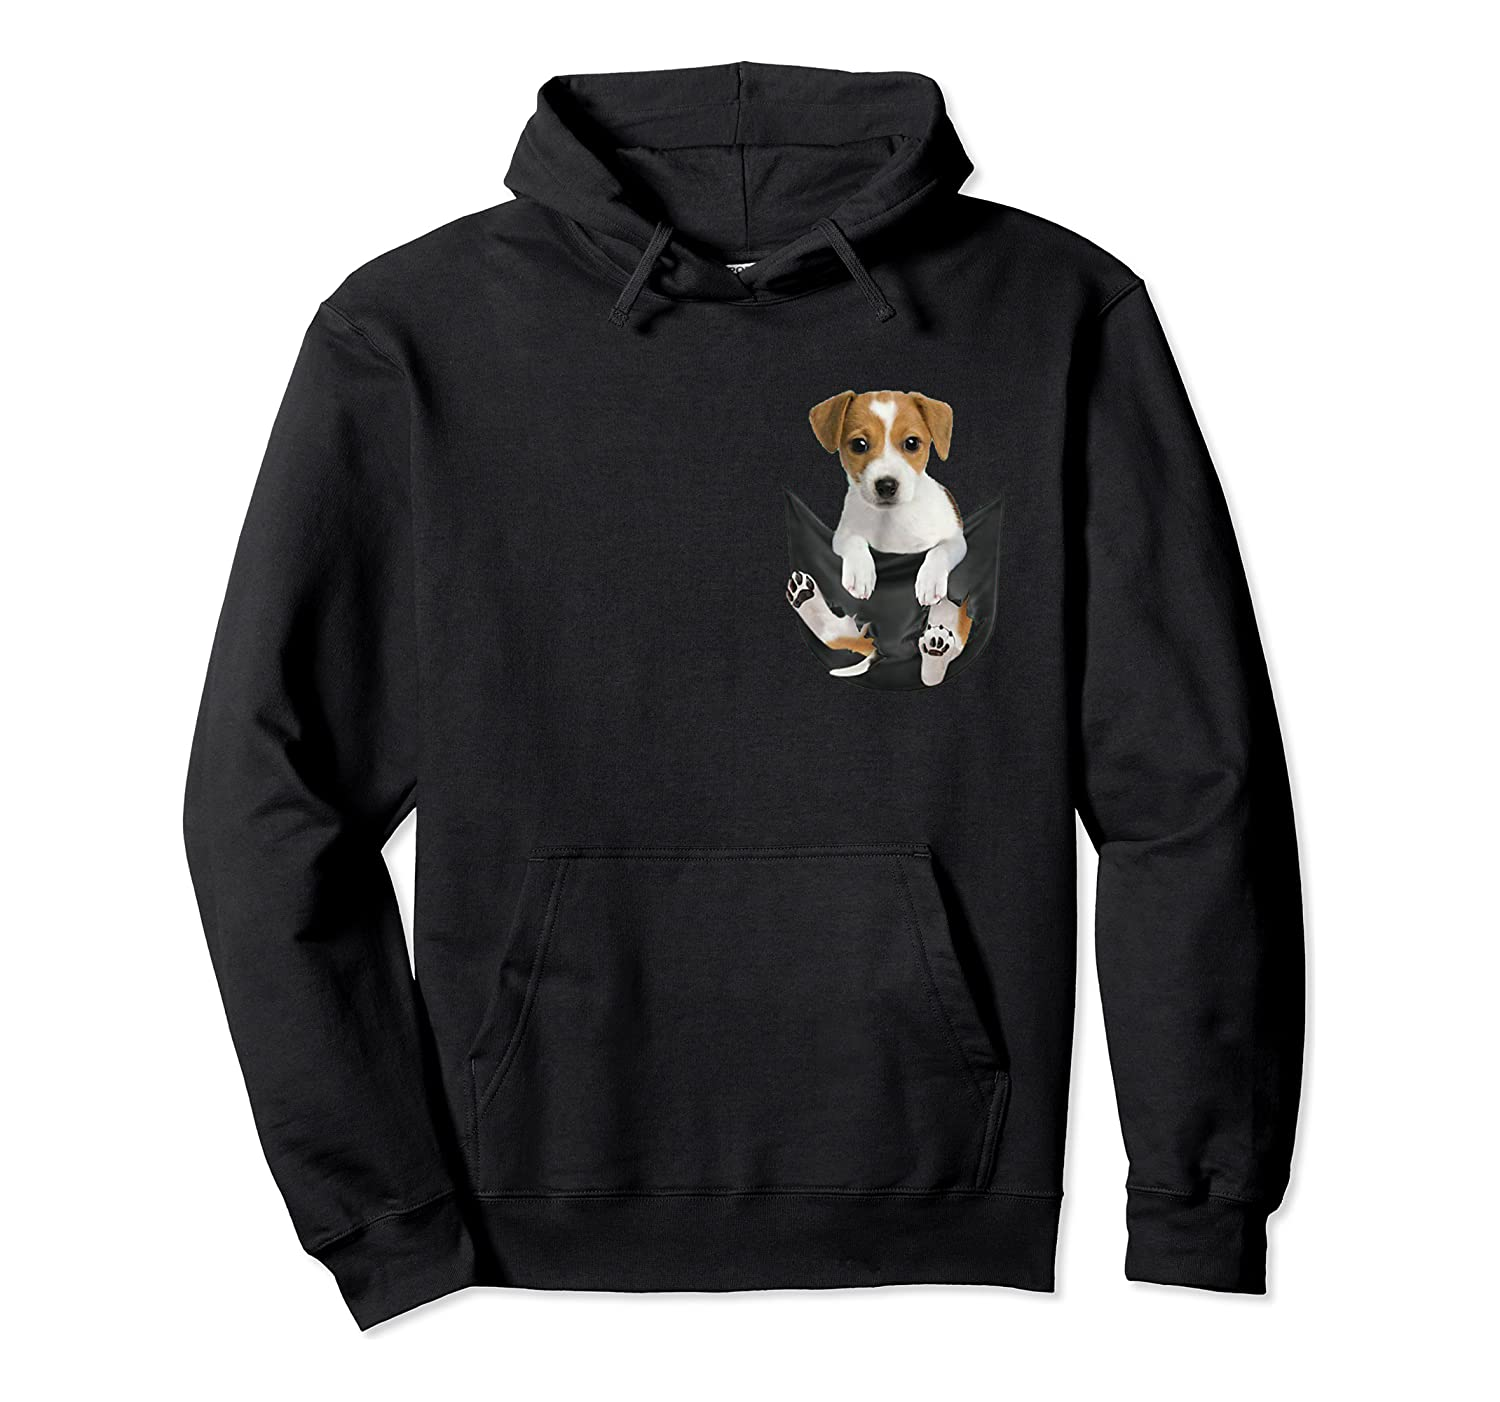 Jack Russell In Pocket Hot Trend Shirts Unisex Pullover Hoodie